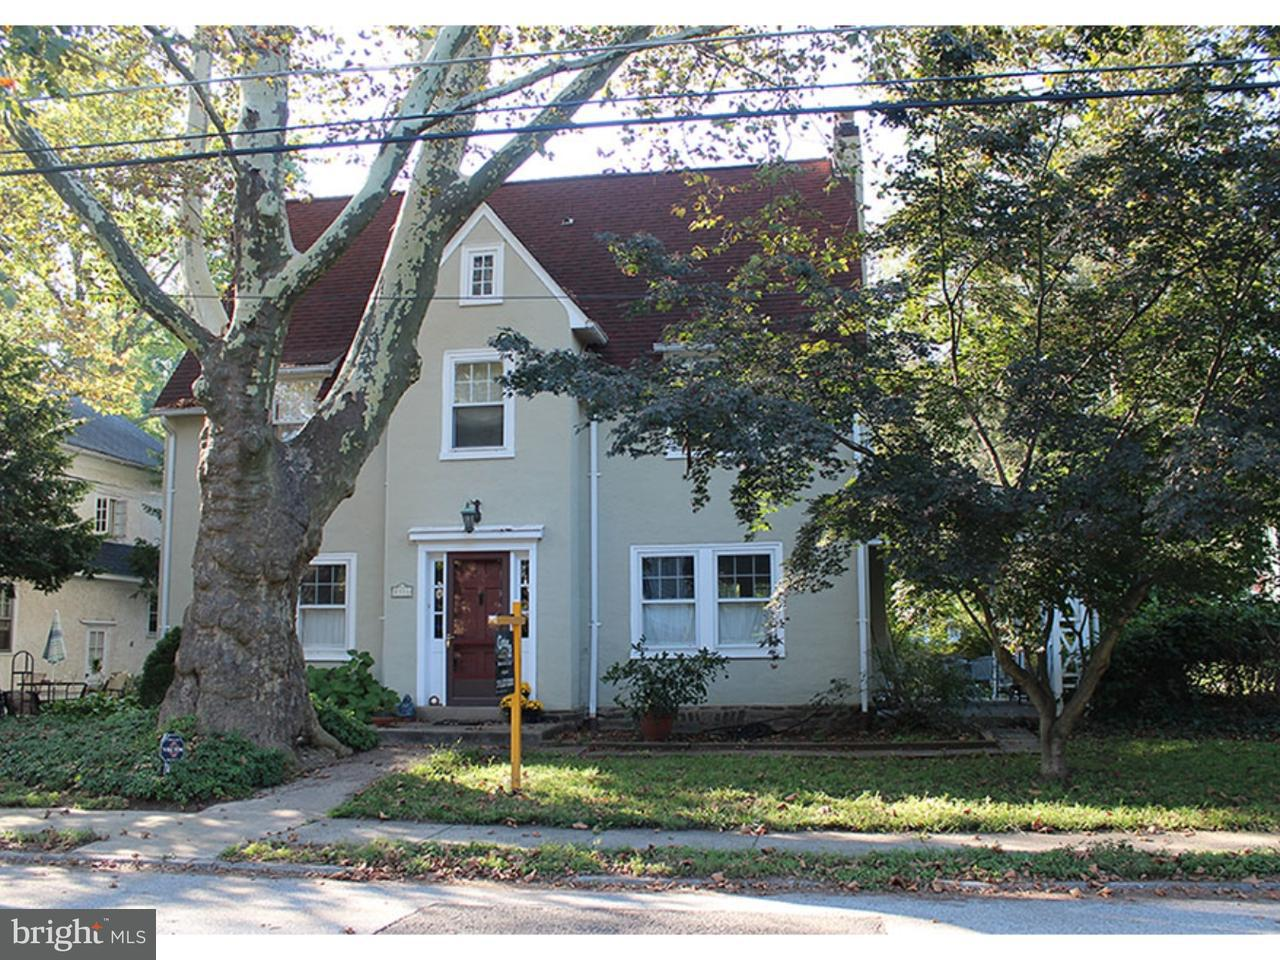 Single Family Home for Sale at 8316 CADWALADER Avenue Elkins Park, Pennsylvania 19027 United States